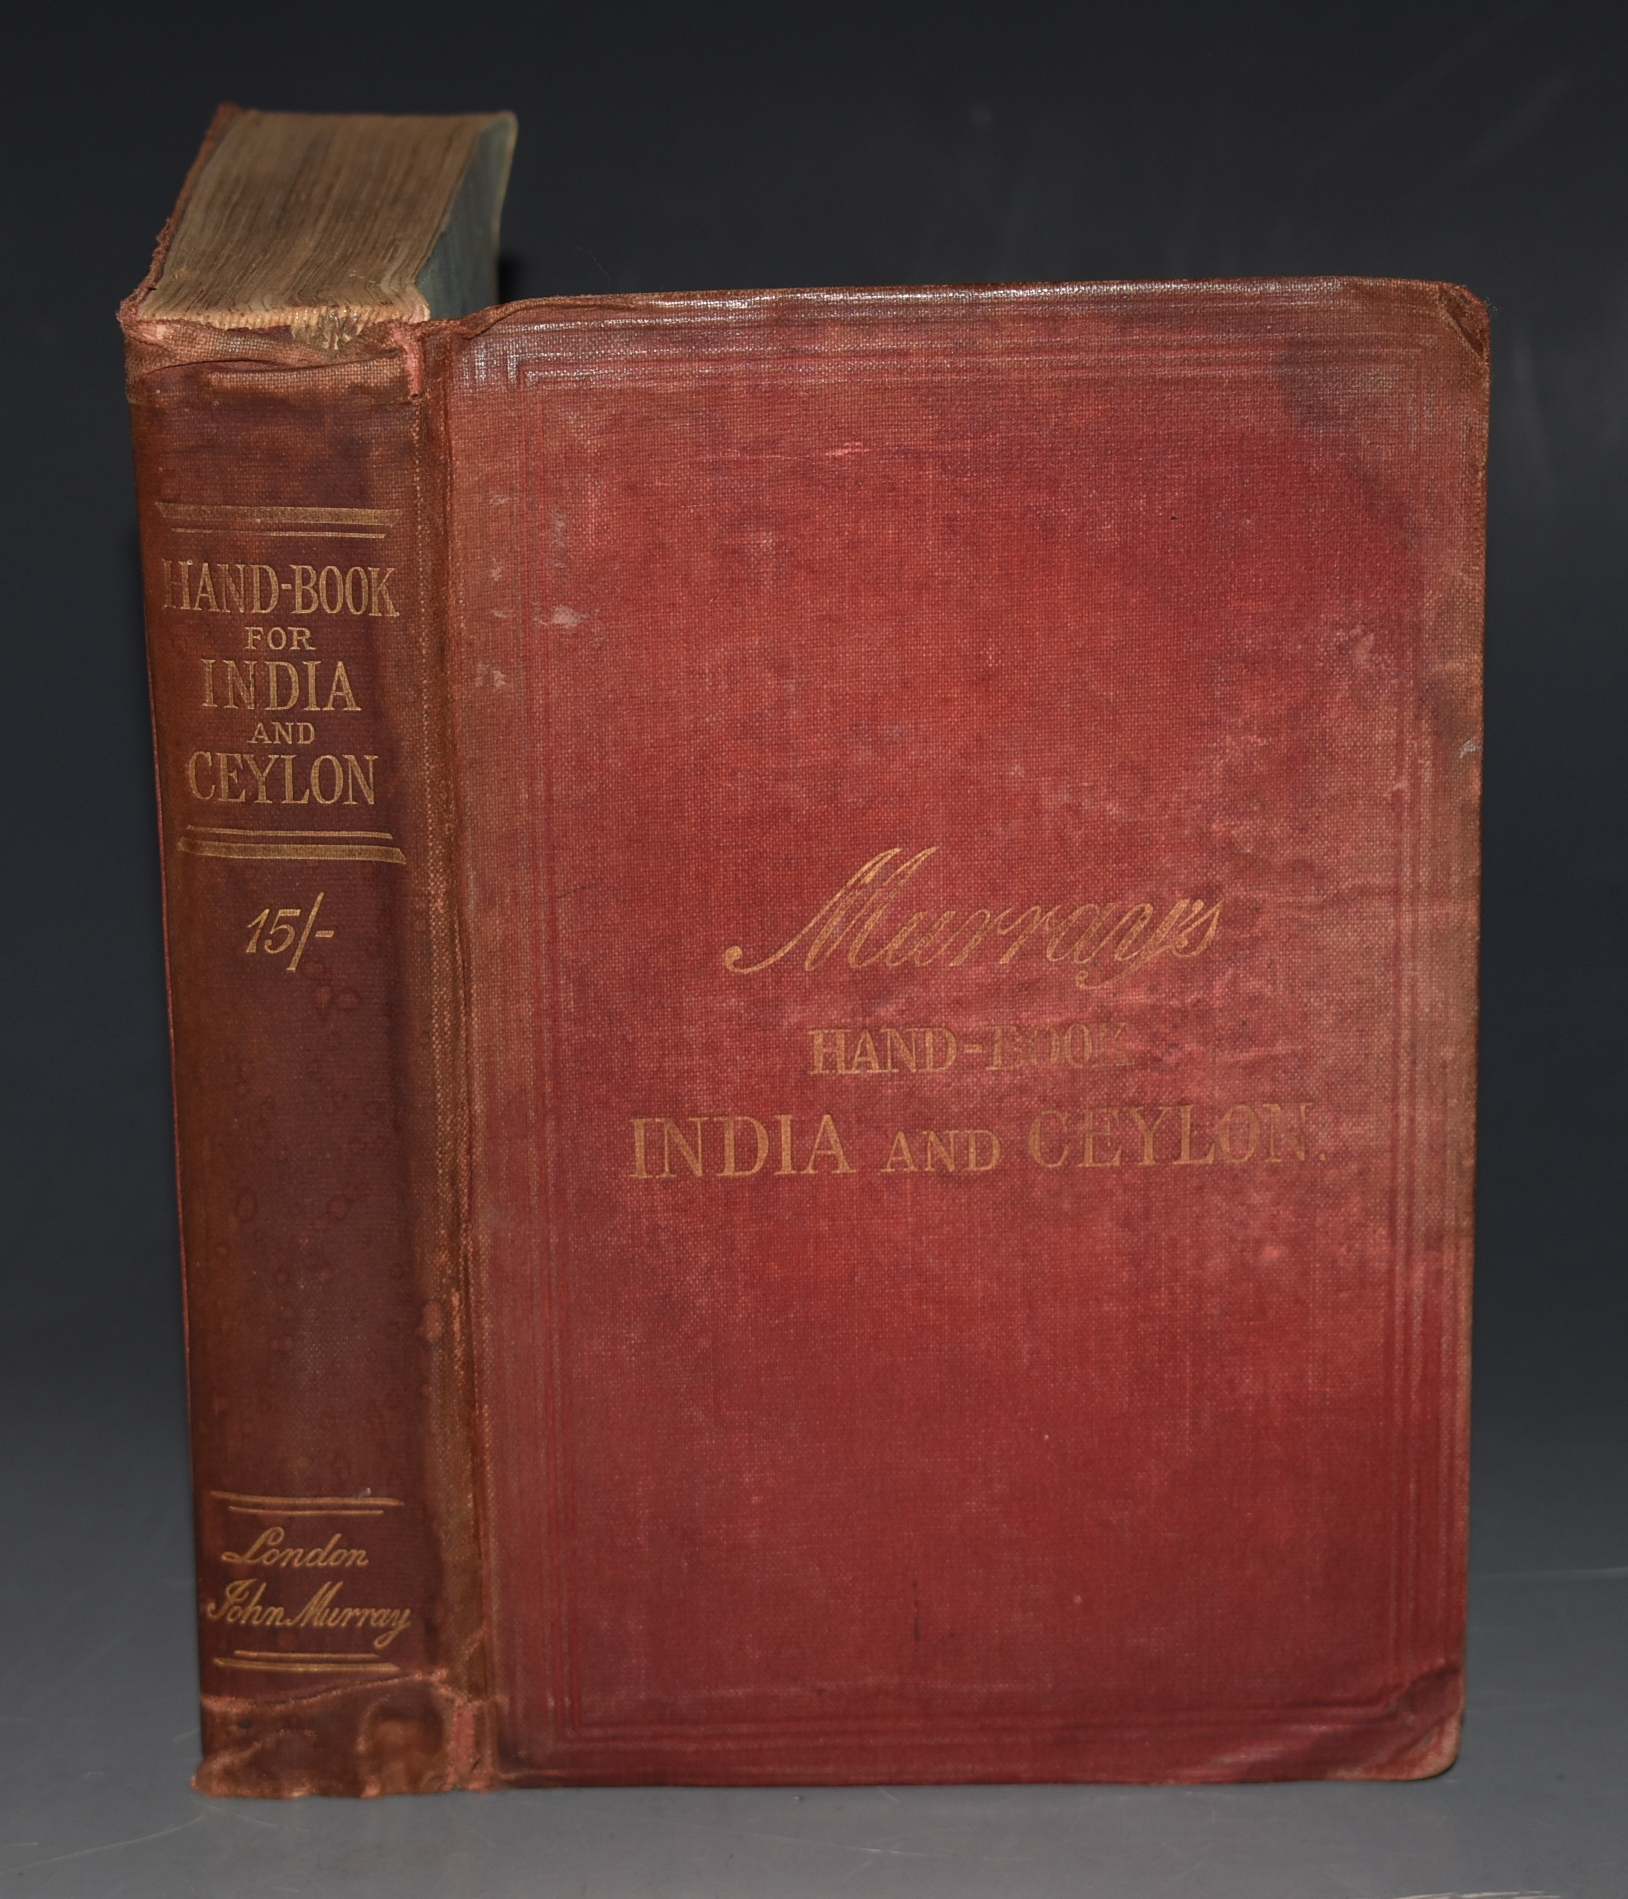 Image for A Handbook for Travellers in India and Ceylon. Including the Provinces of Bengal, Bombay, and Madras, (The Punjab, North-West Provinces, Rajputana, Central Provinces, Mysore, etc.) The Native States and Assam.